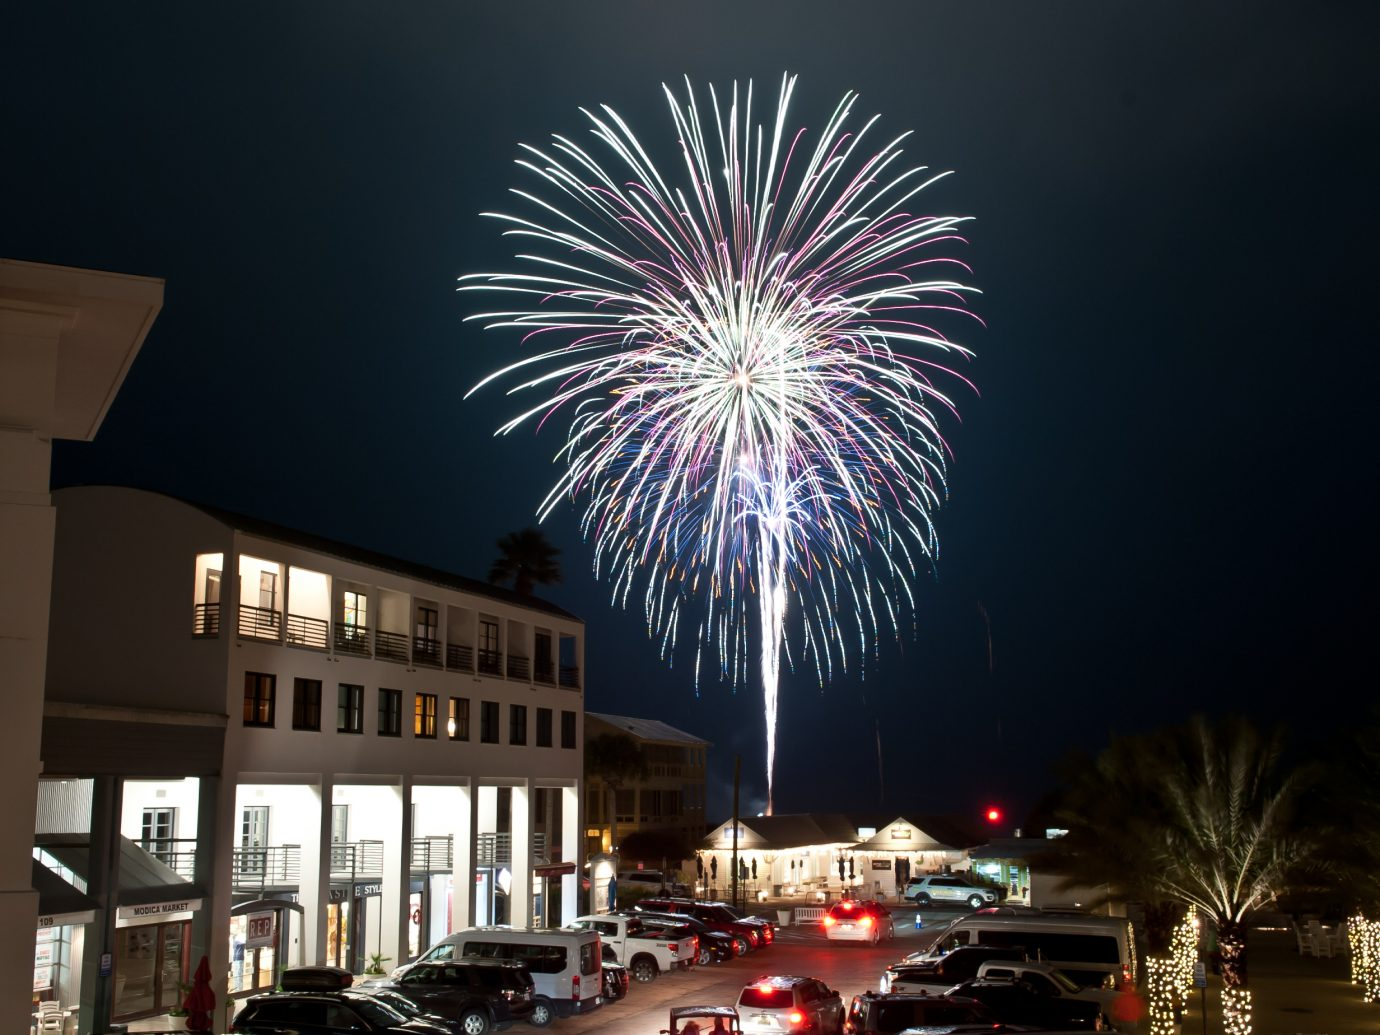 Fireworks display in Seaside, FL